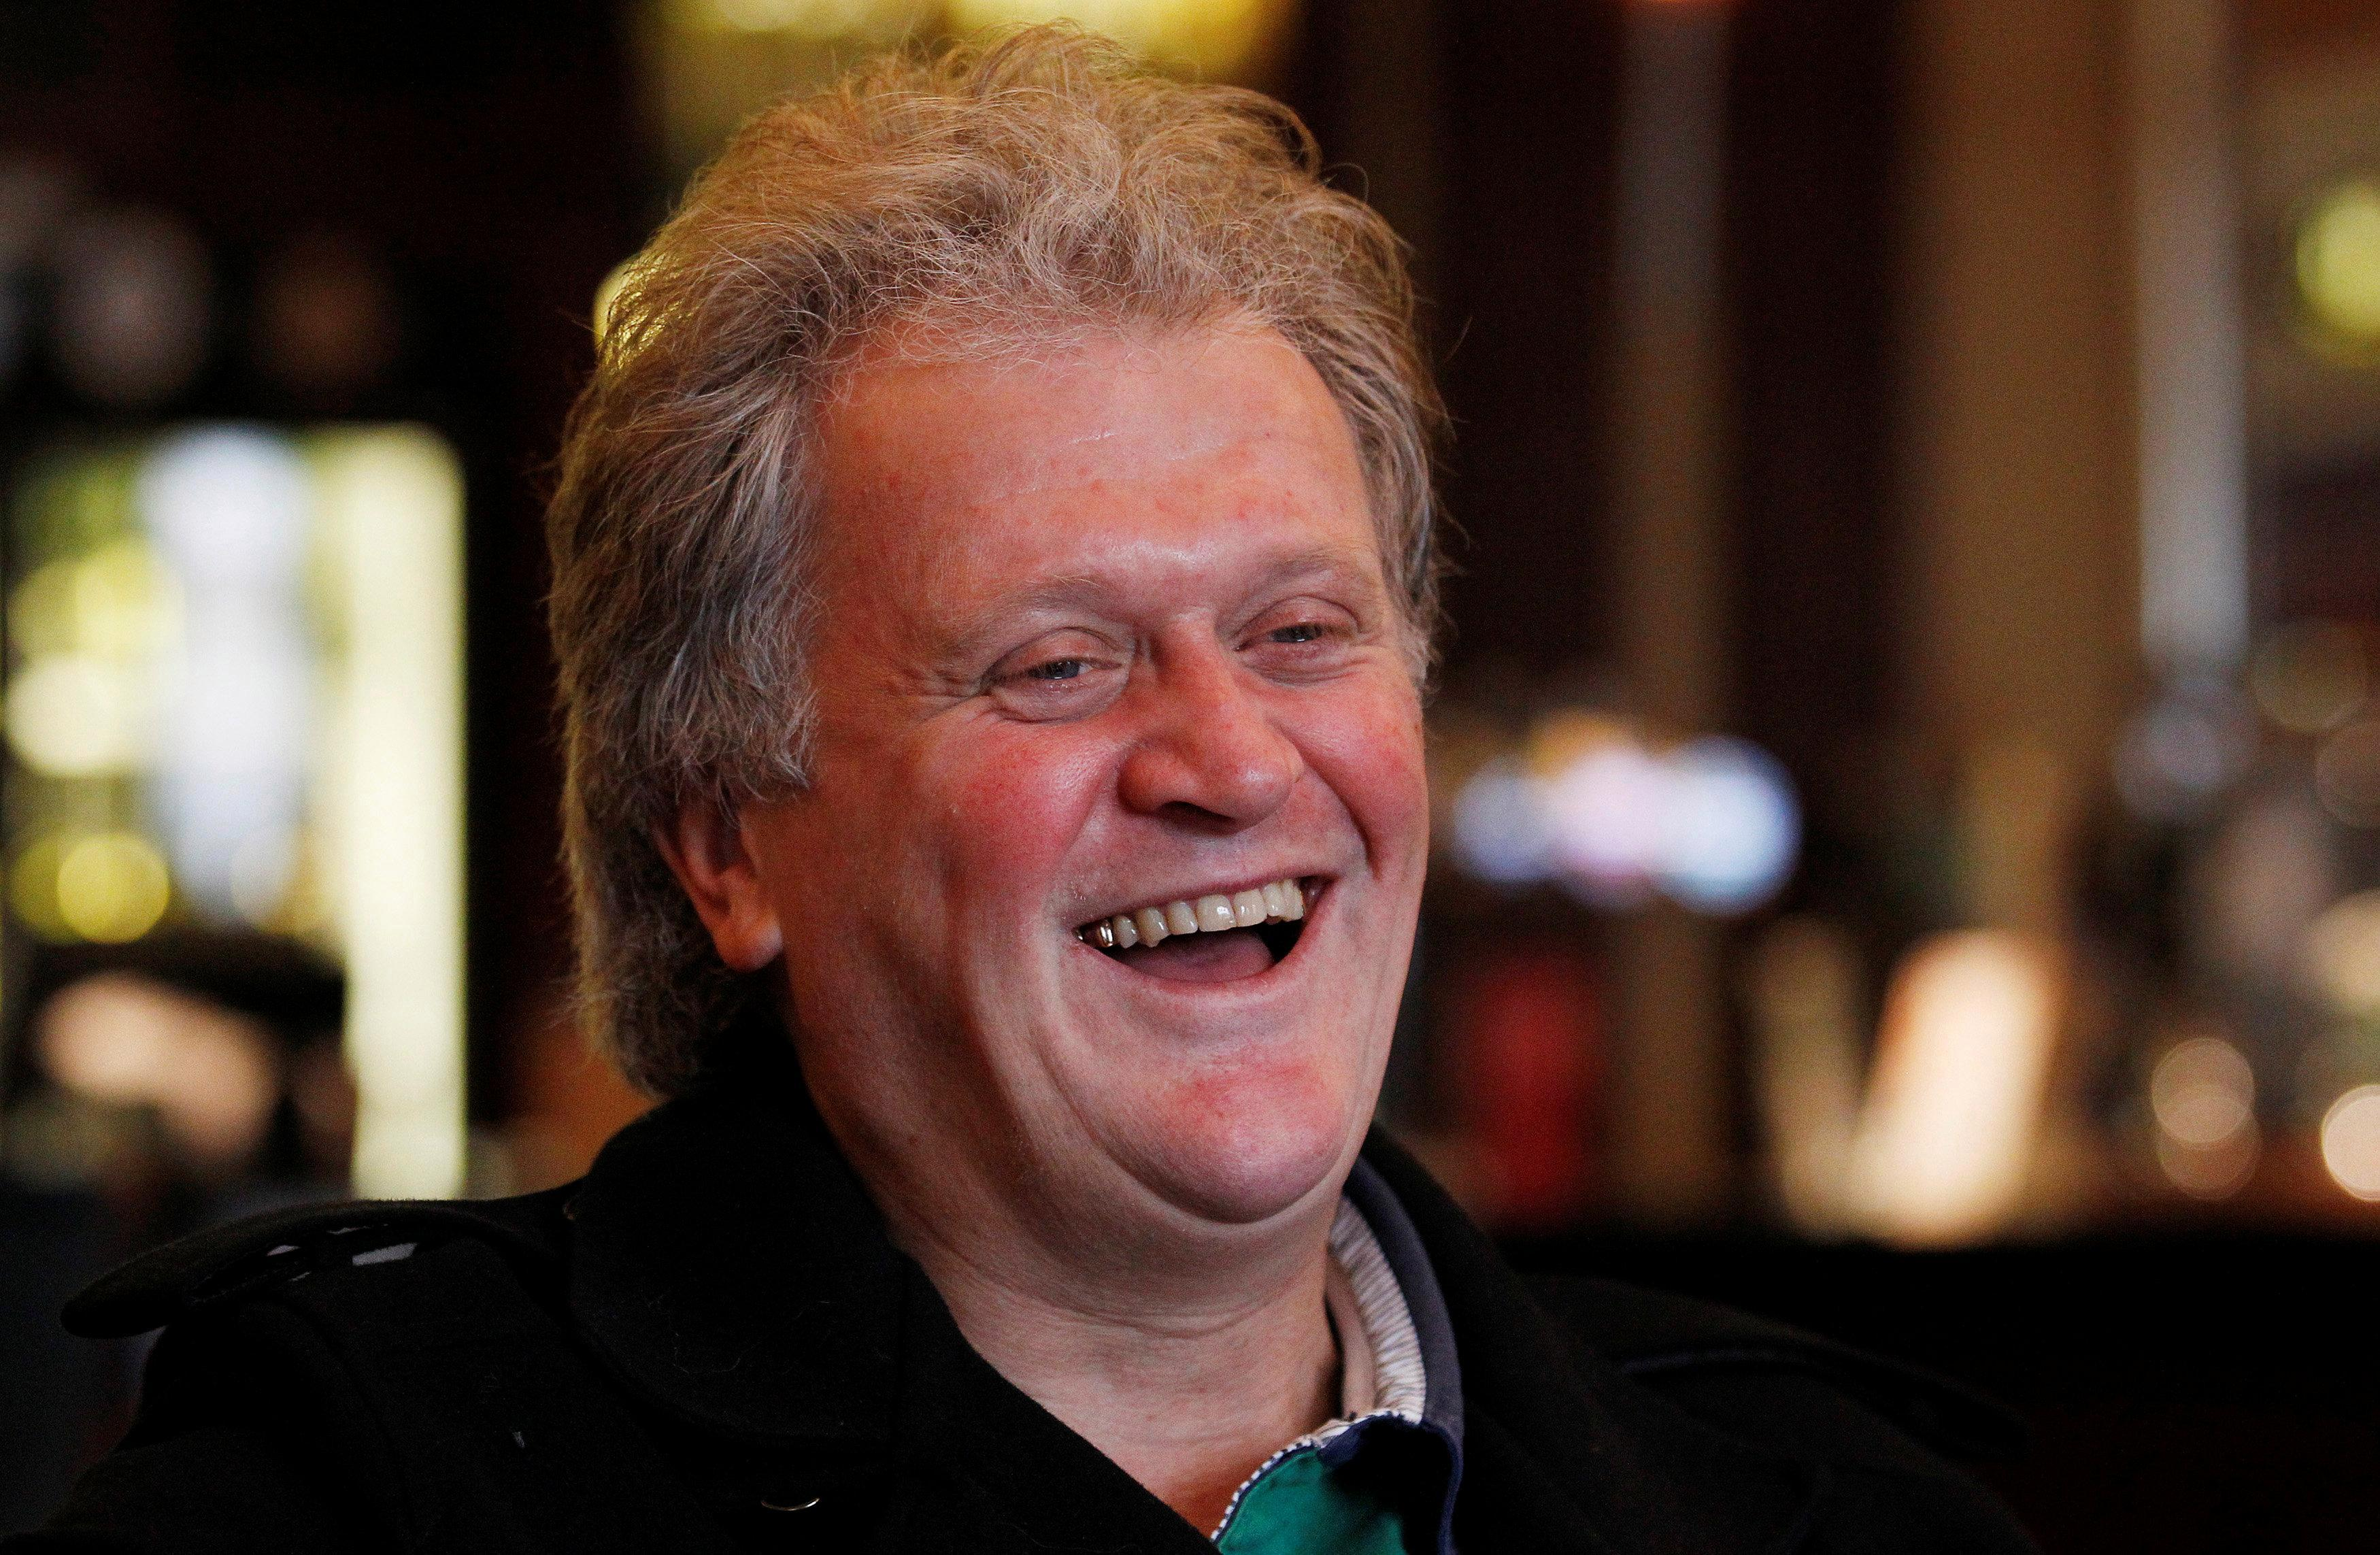 Wetherspoon boss urges Theresa May to prepare for a 'no deal' Brexit as she is accused of being 'incompetent and weak'